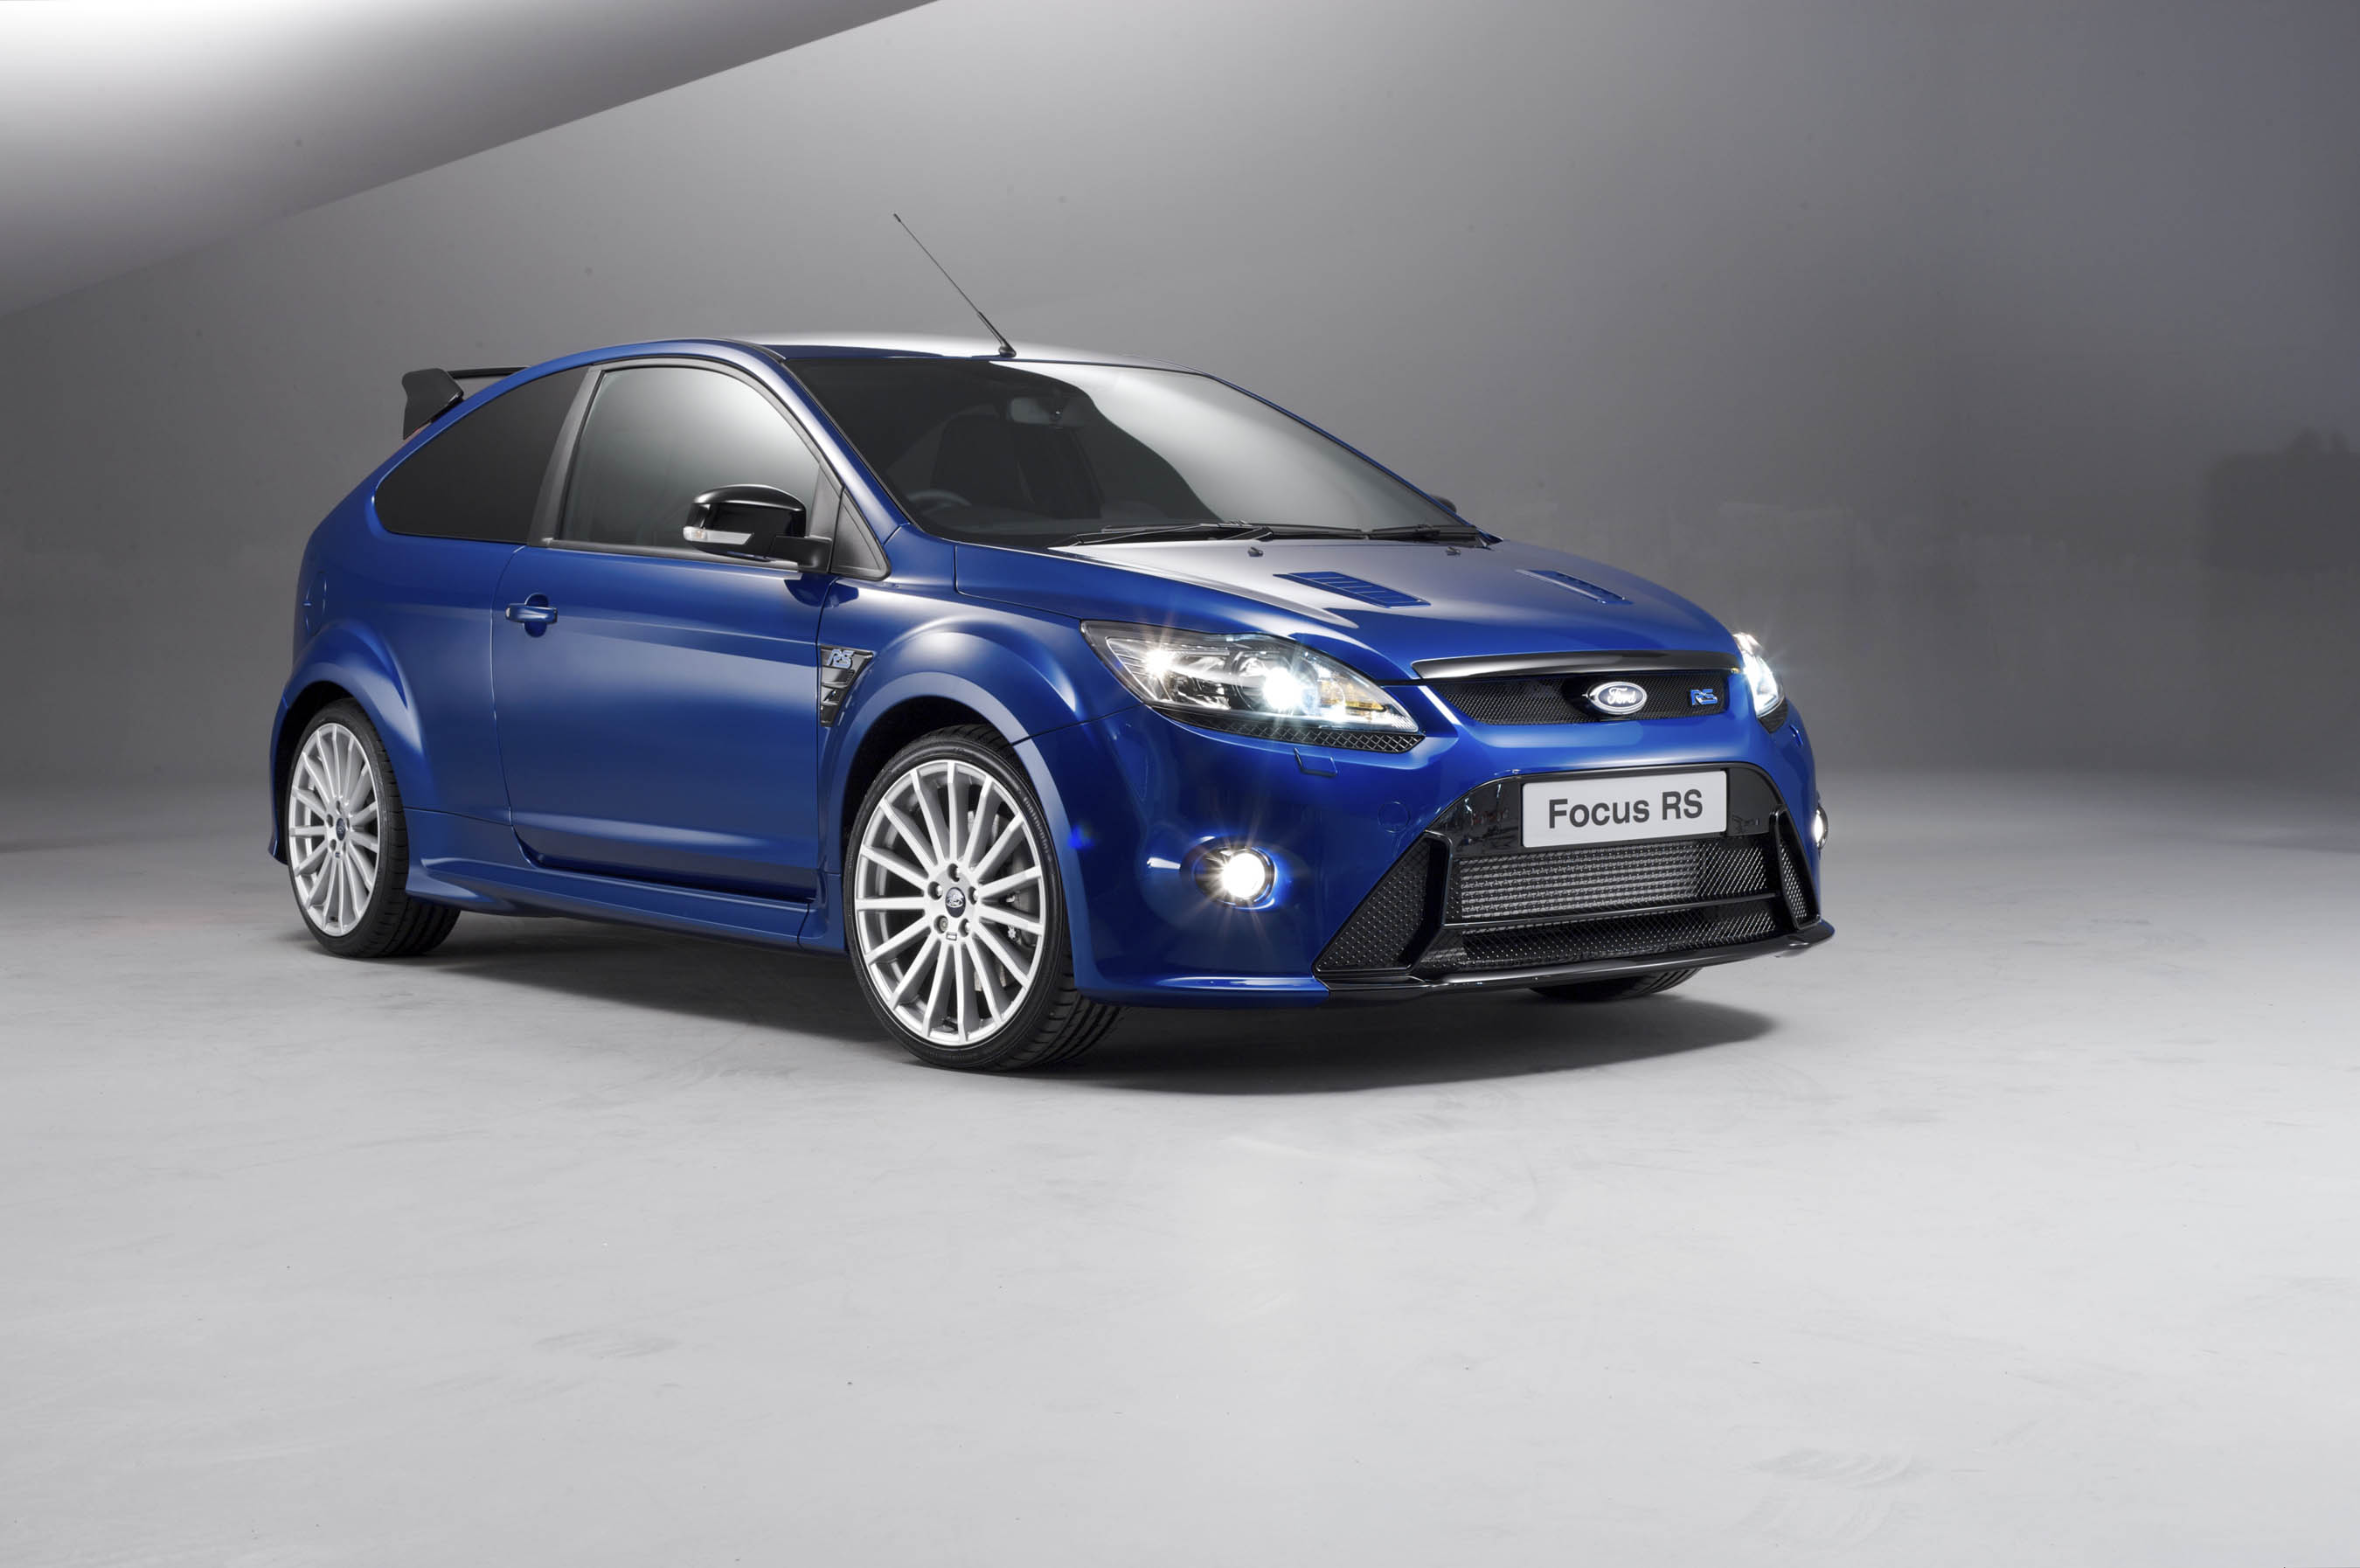 2008 Ford Focus RS - Picture 11540